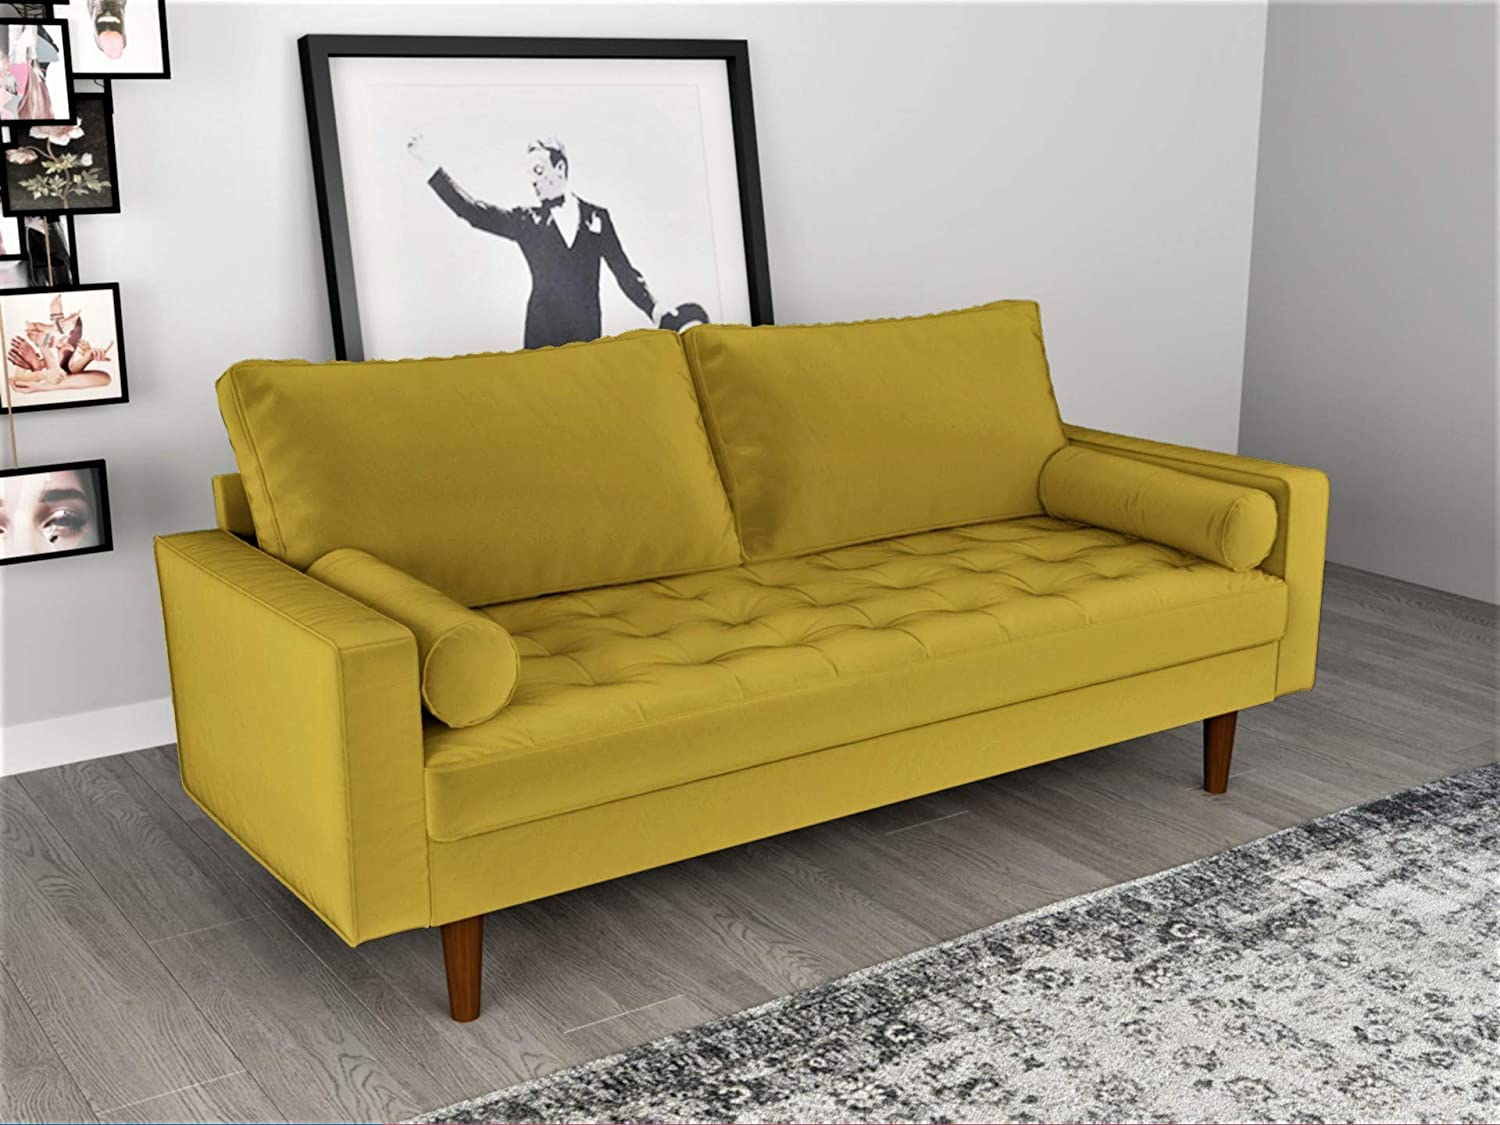 Astounding Container Furniture Direct S5459 Mid Century Modern Velvet Upholstered Tufted Living Room Sofa 69 68 Goldenrod Machost Co Dining Chair Design Ideas Machostcouk